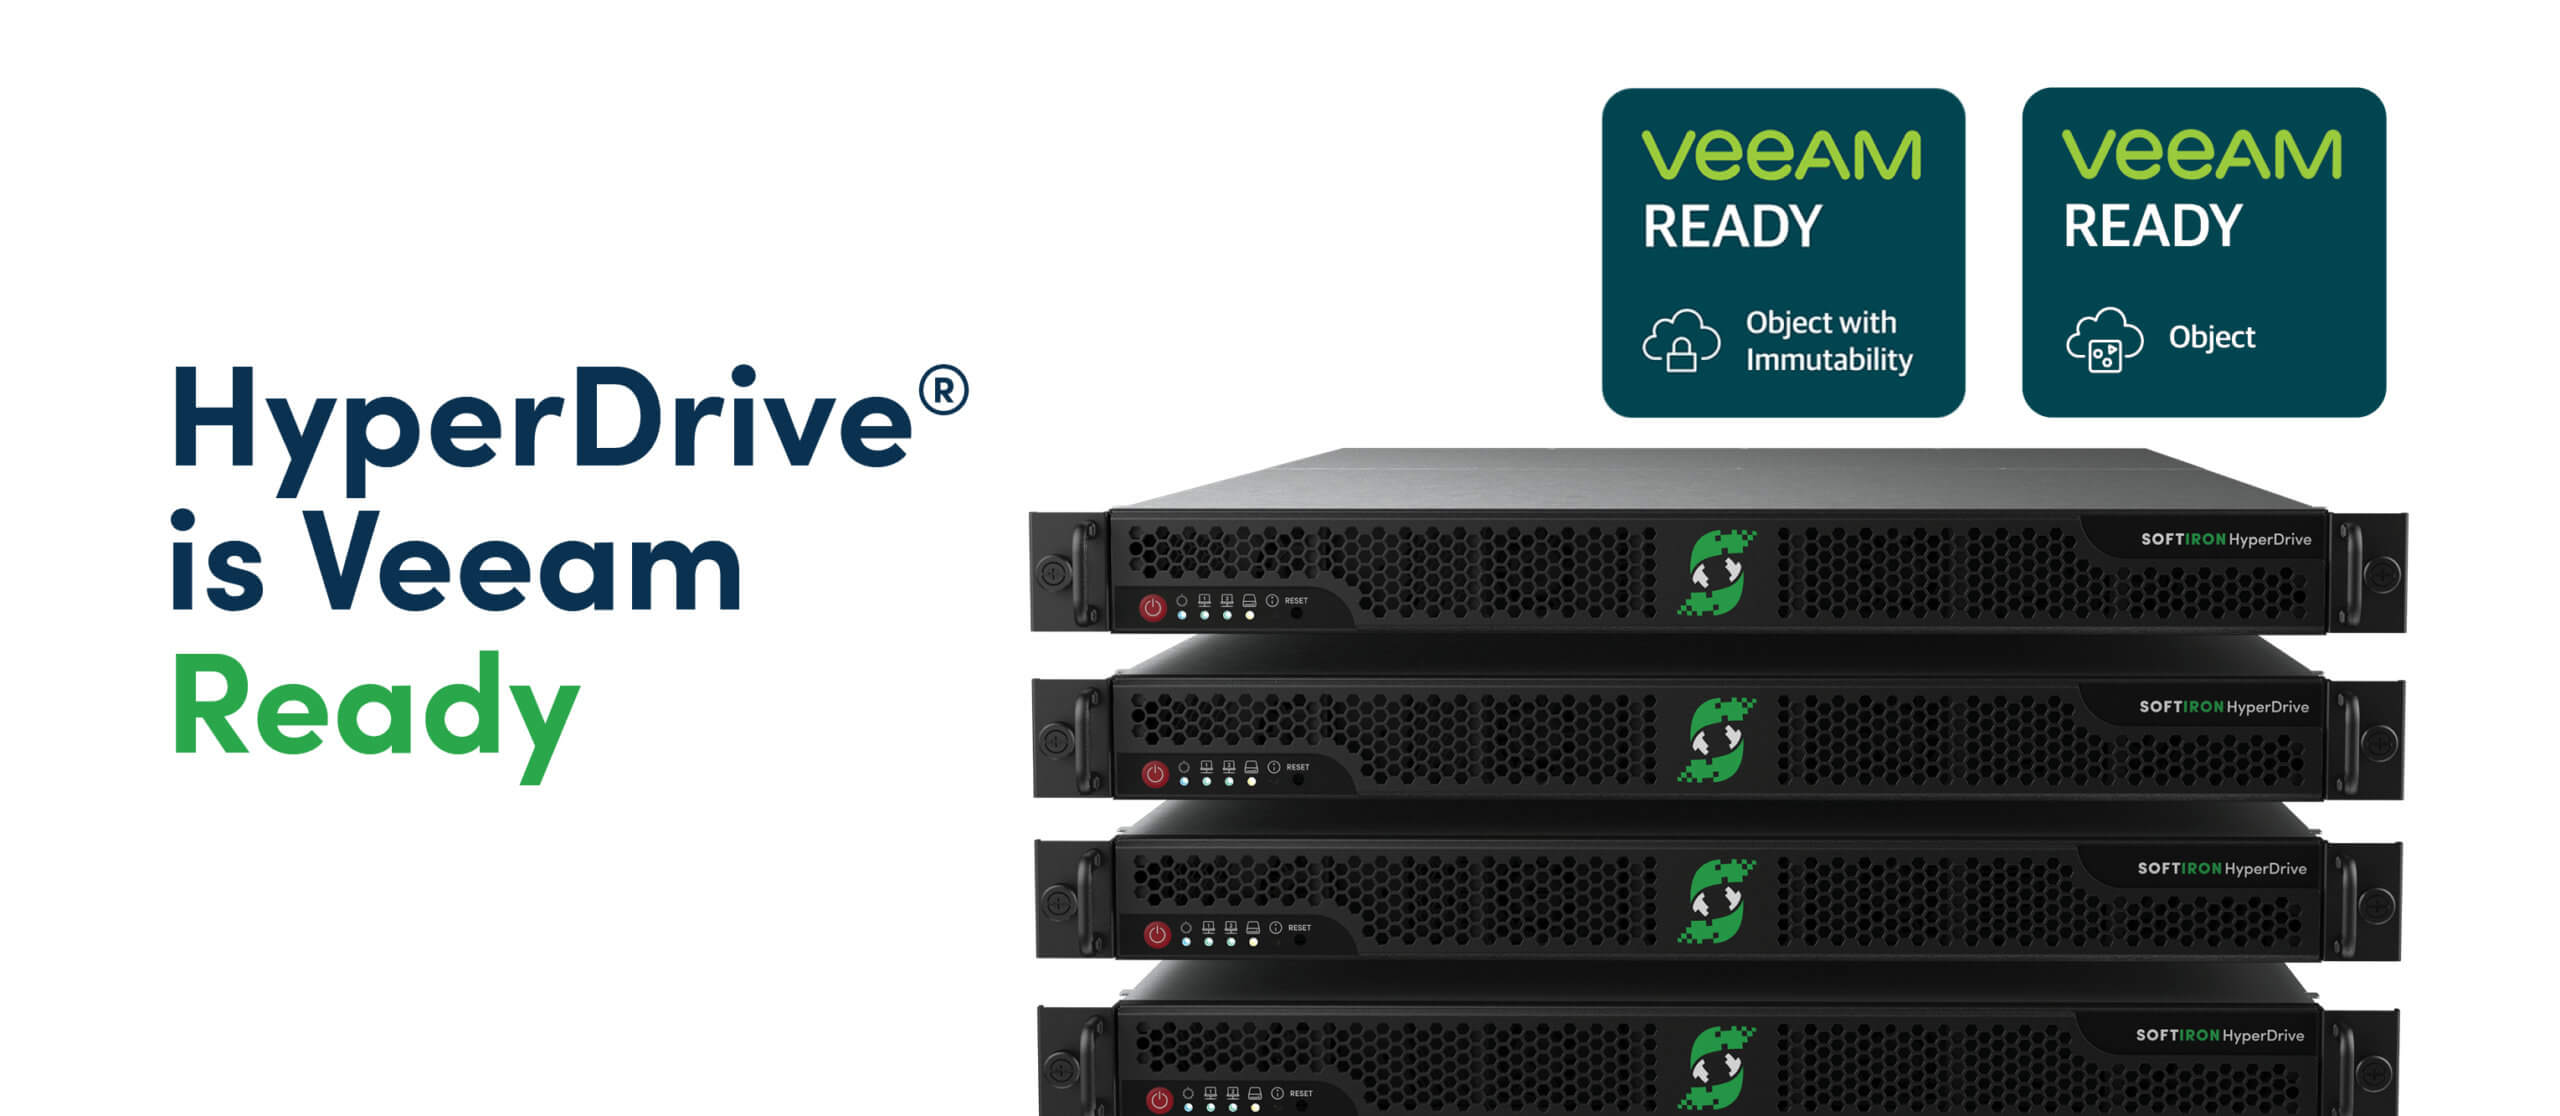 Image for HyperDrive + Veeam Quick Start Guide